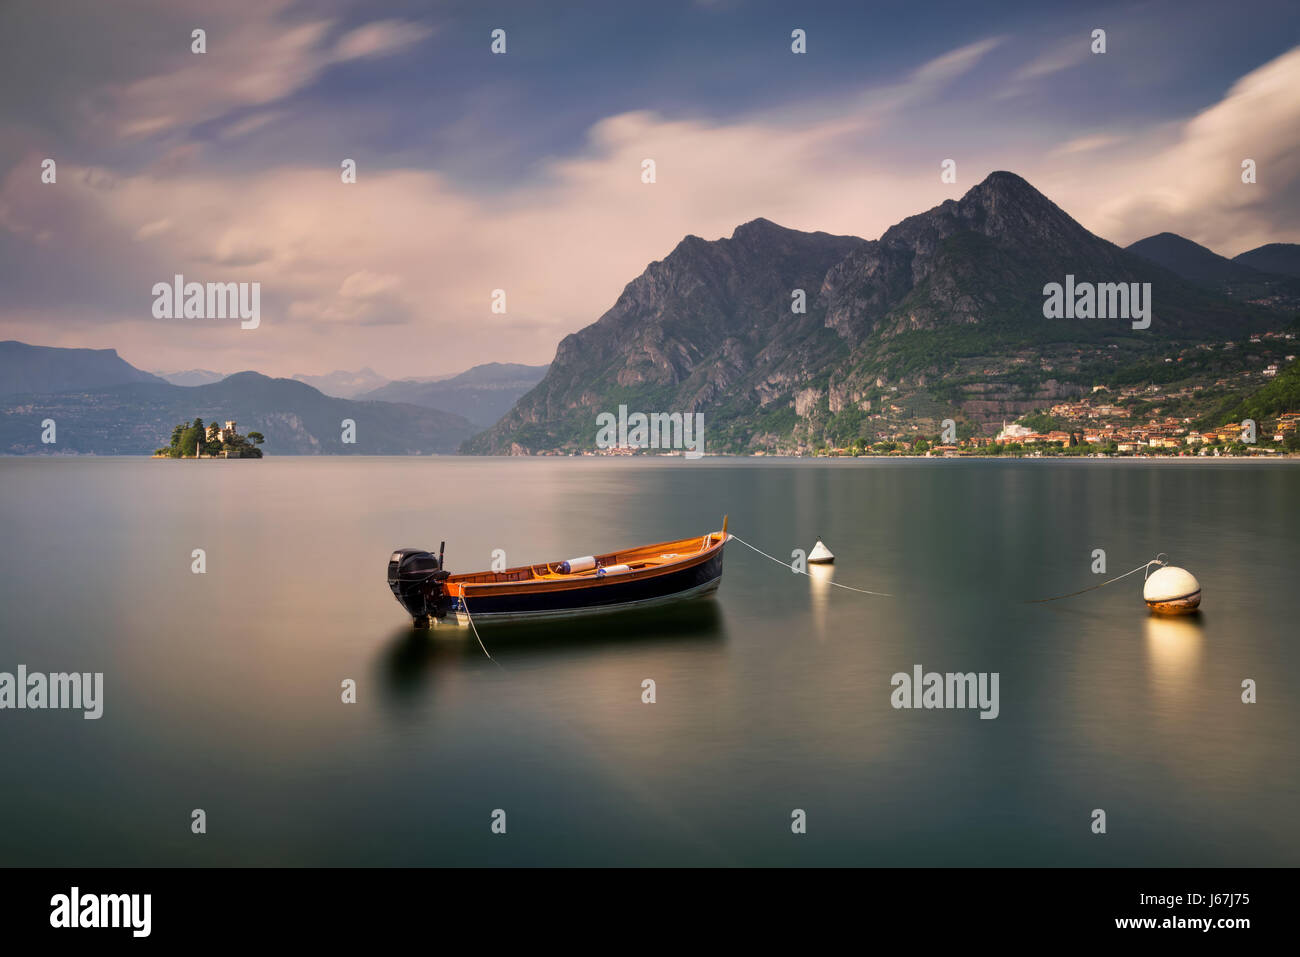 Boat on Iseo Lake with mountains in background, Italy - Stock Image